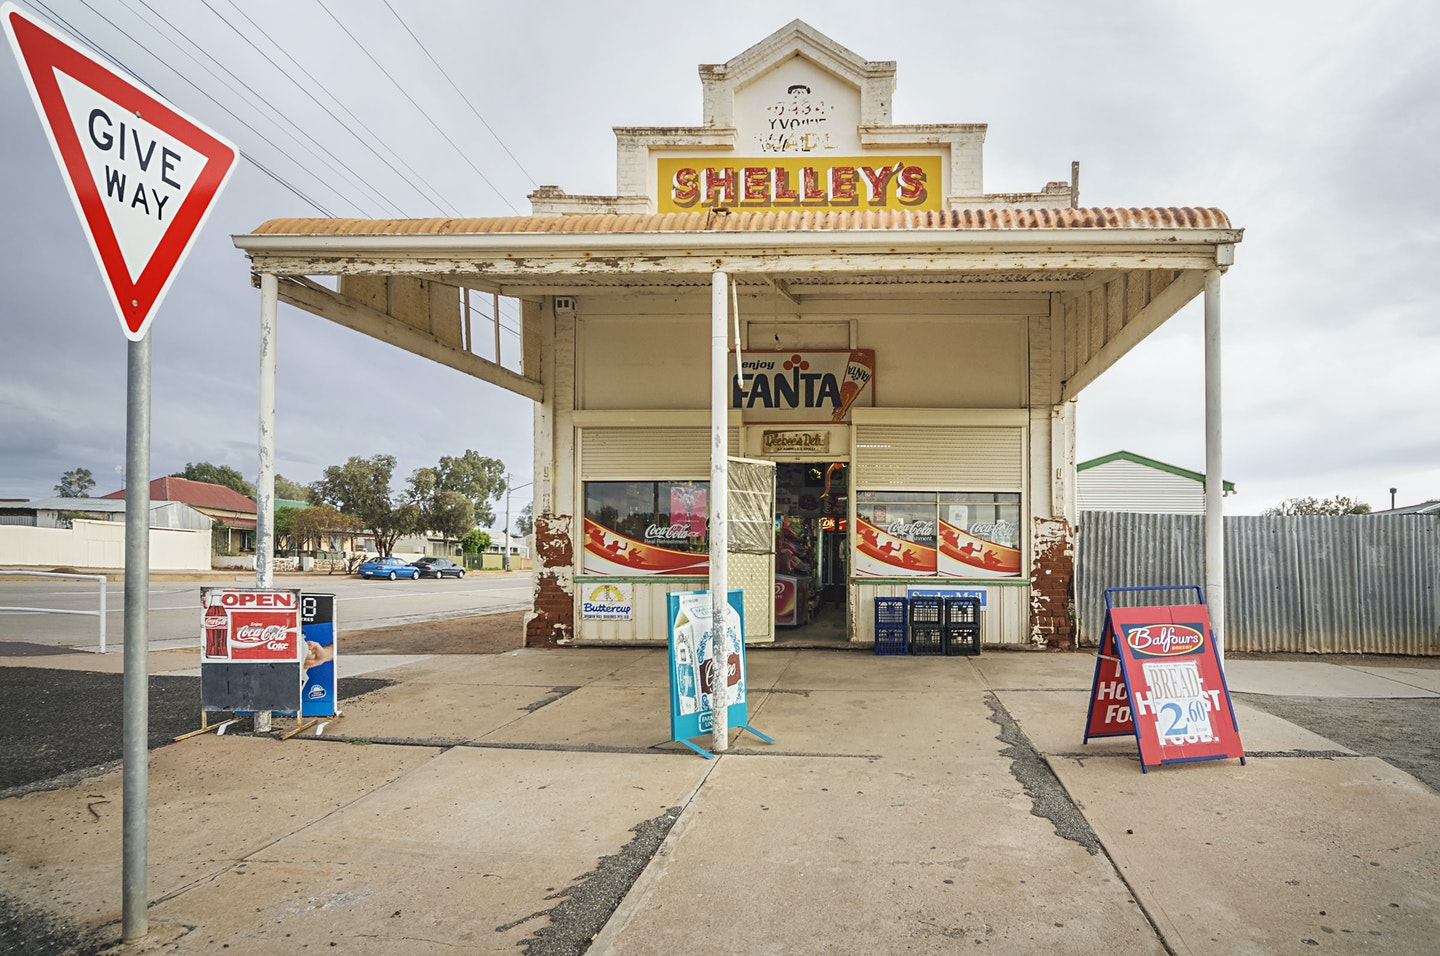 Birgit Neiser, 'The Corner Store', Broken Hill, NSW.